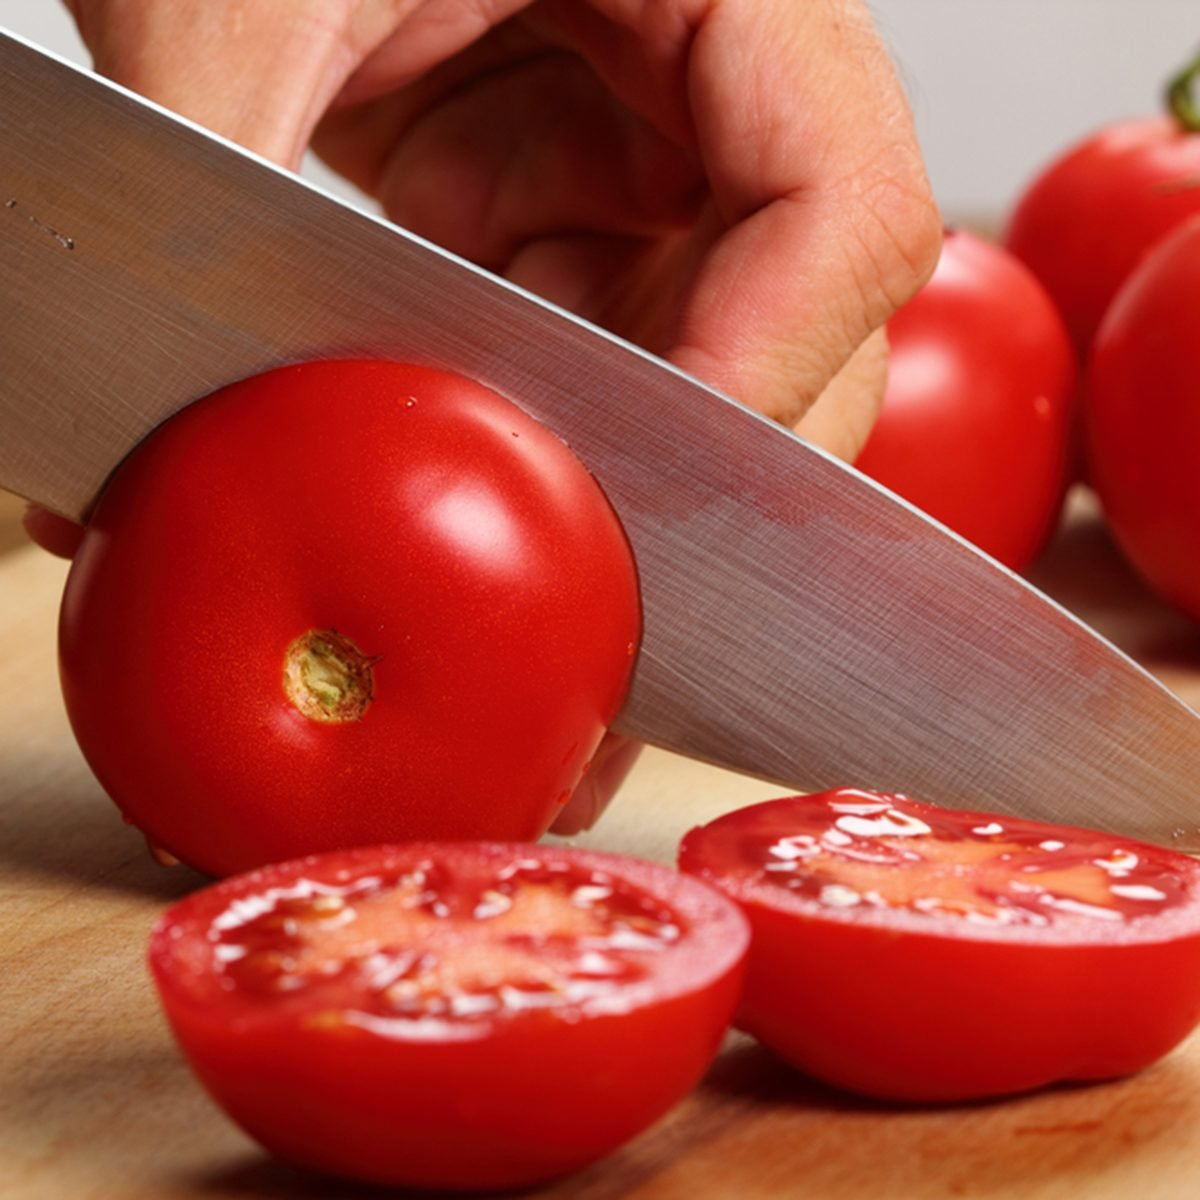 Slice Tomatoes in Half